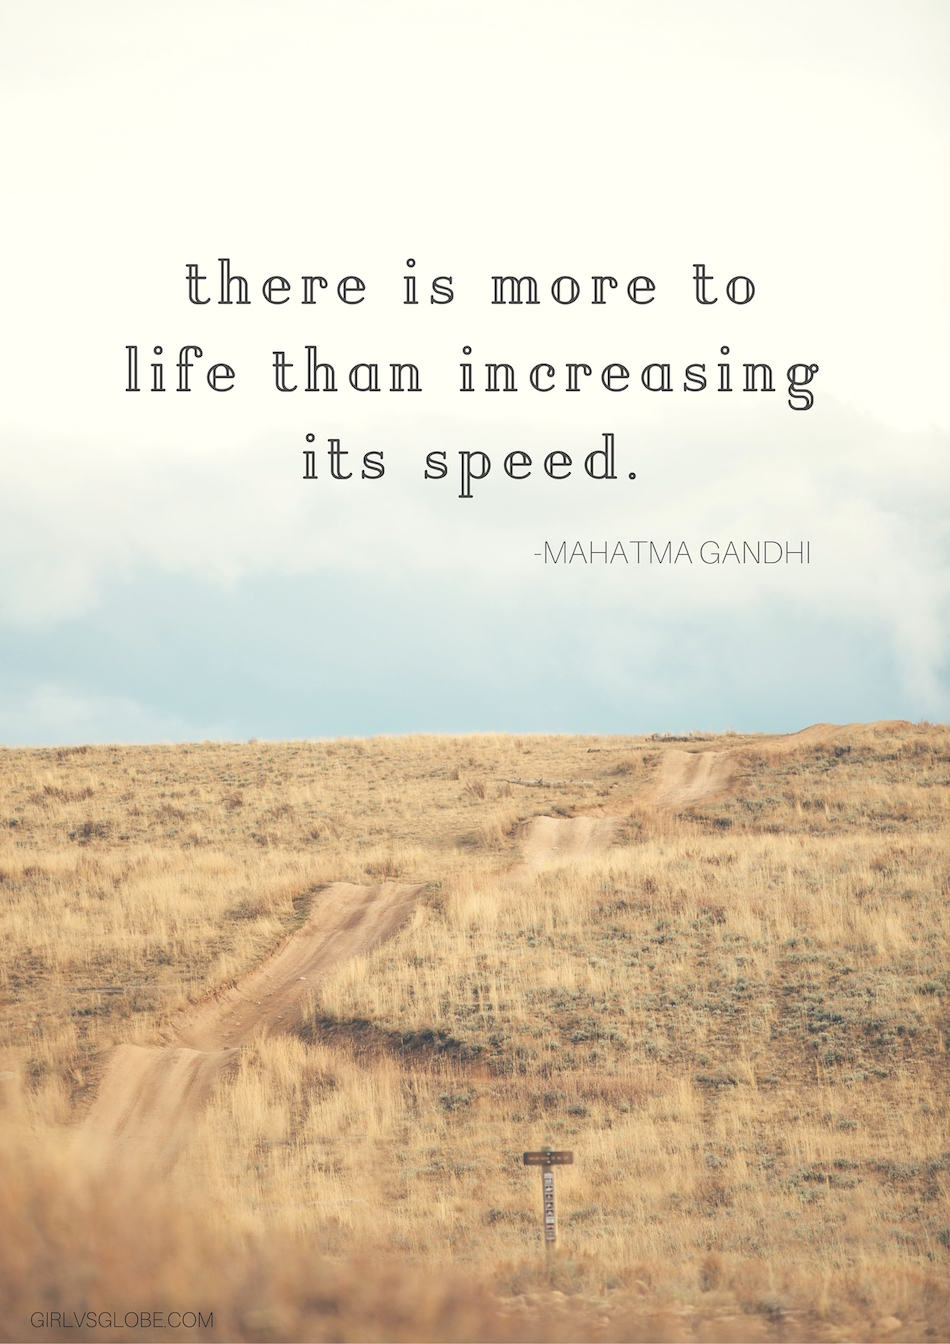 there is more to life than increasing its speed gandhi quote